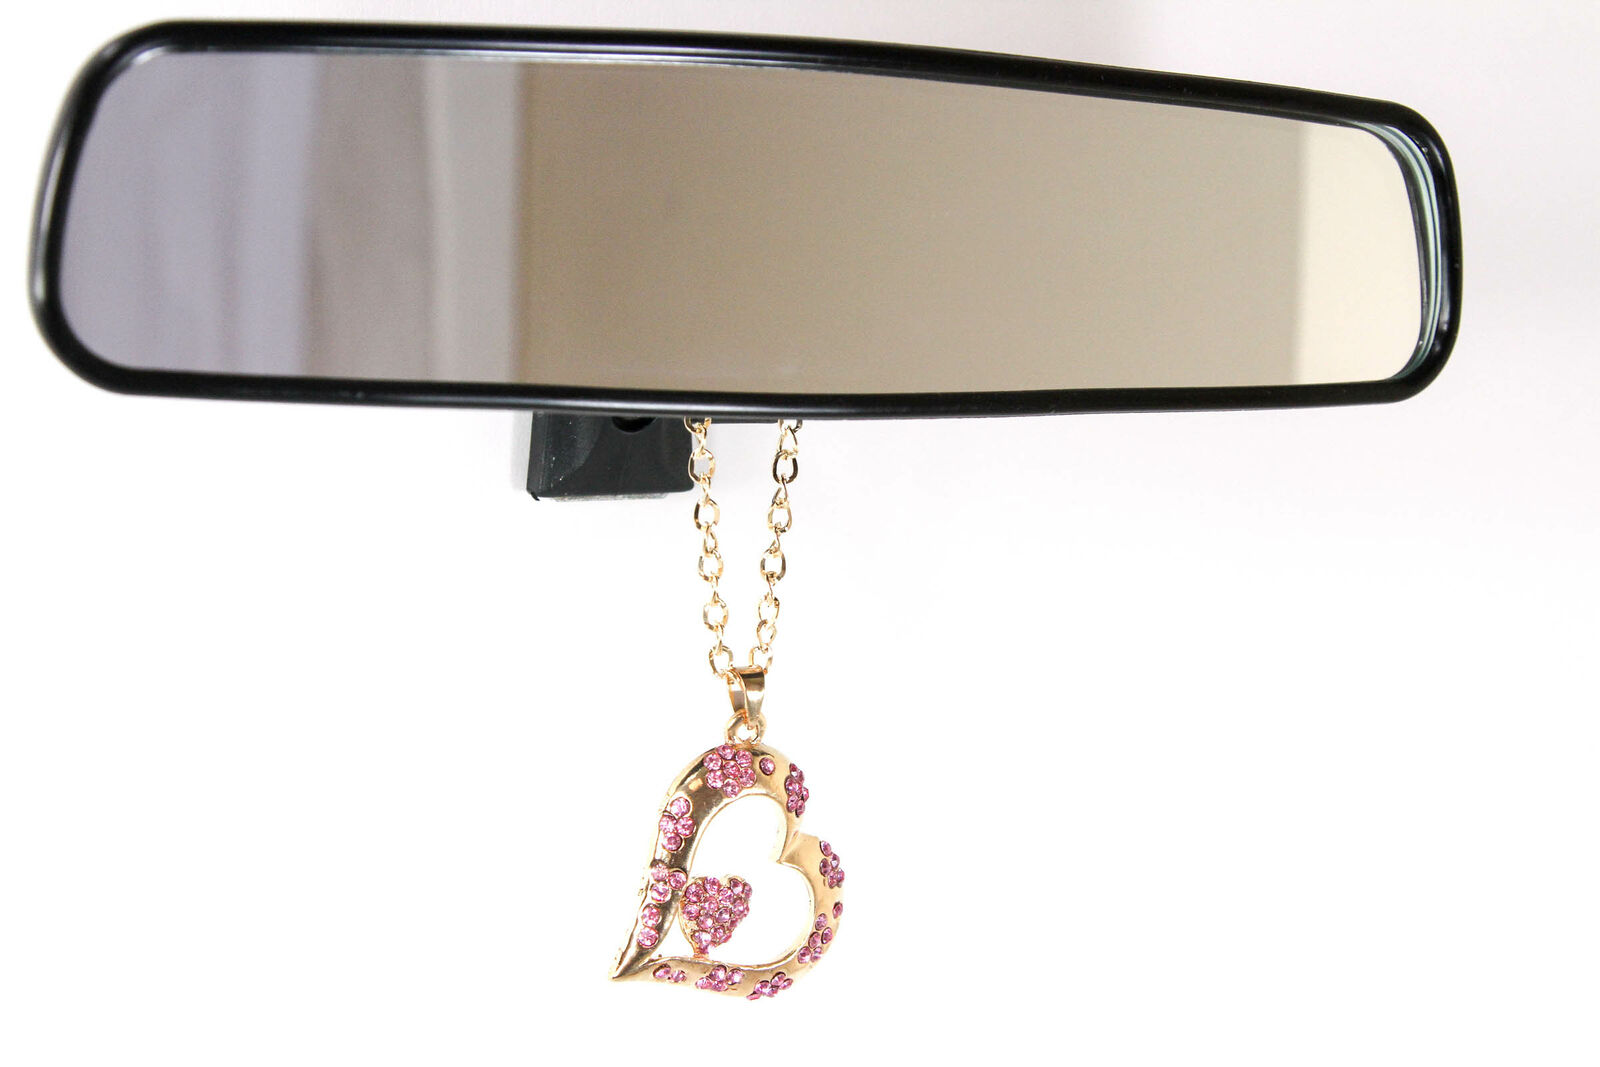 Farfegnugen German Design Ornament Car Rear View Mirror Hanger For Sale Online Ebay See more of digimon card game english version on facebook. bling heart rear view mirror hanging car charm ornament gold pink pendant chain